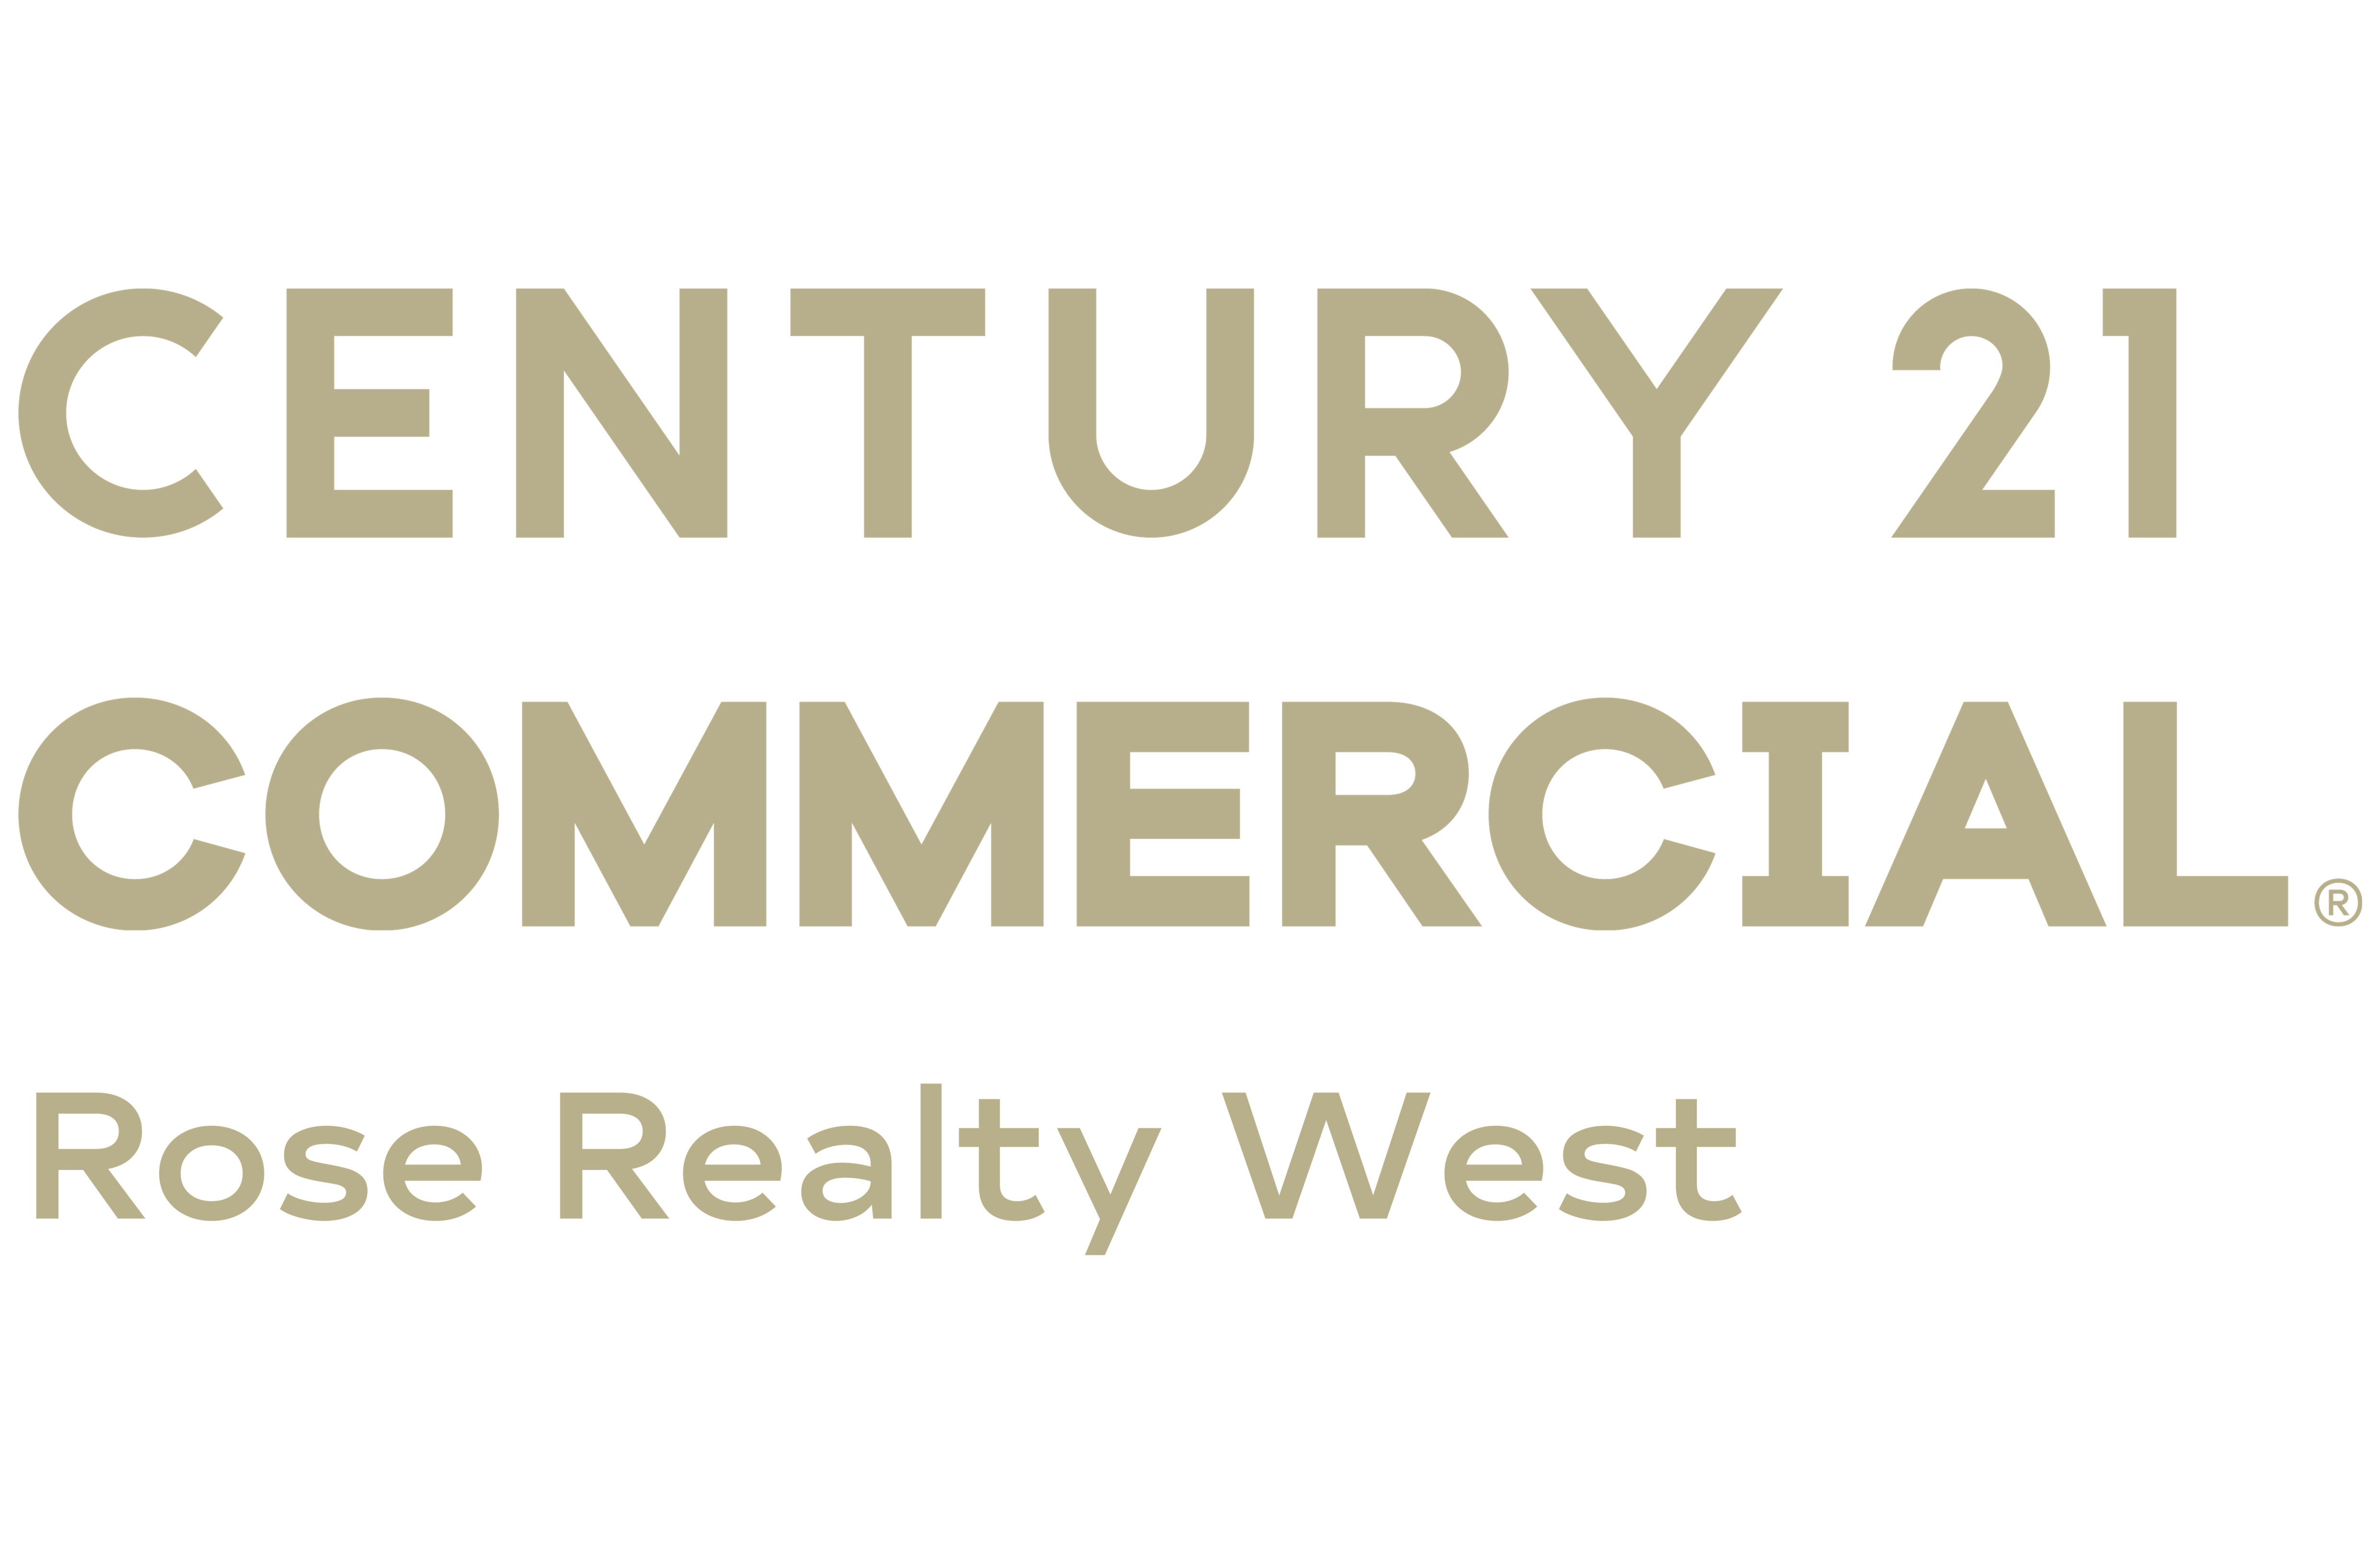 CENTURY 21 Rose Realty West